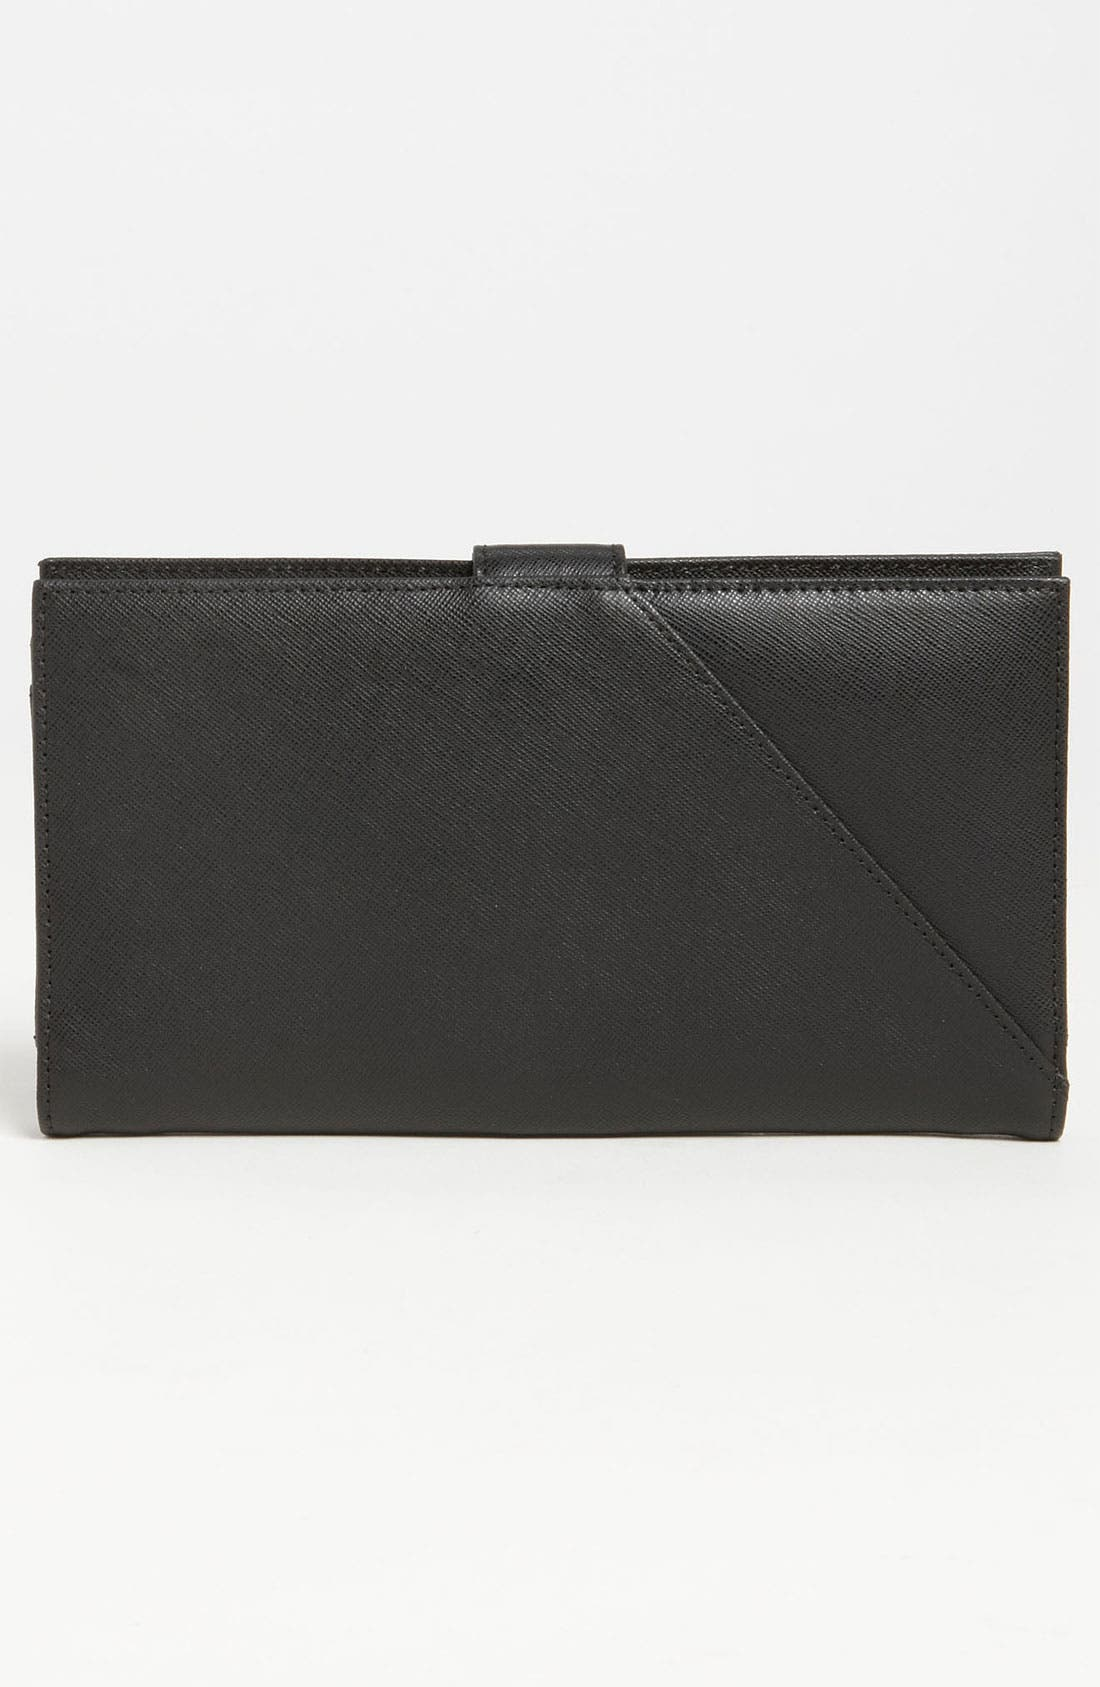 TORY BURCH,                             'Robinson' Oversized Travel Wallet,                             Alternate thumbnail 3, color,                             001